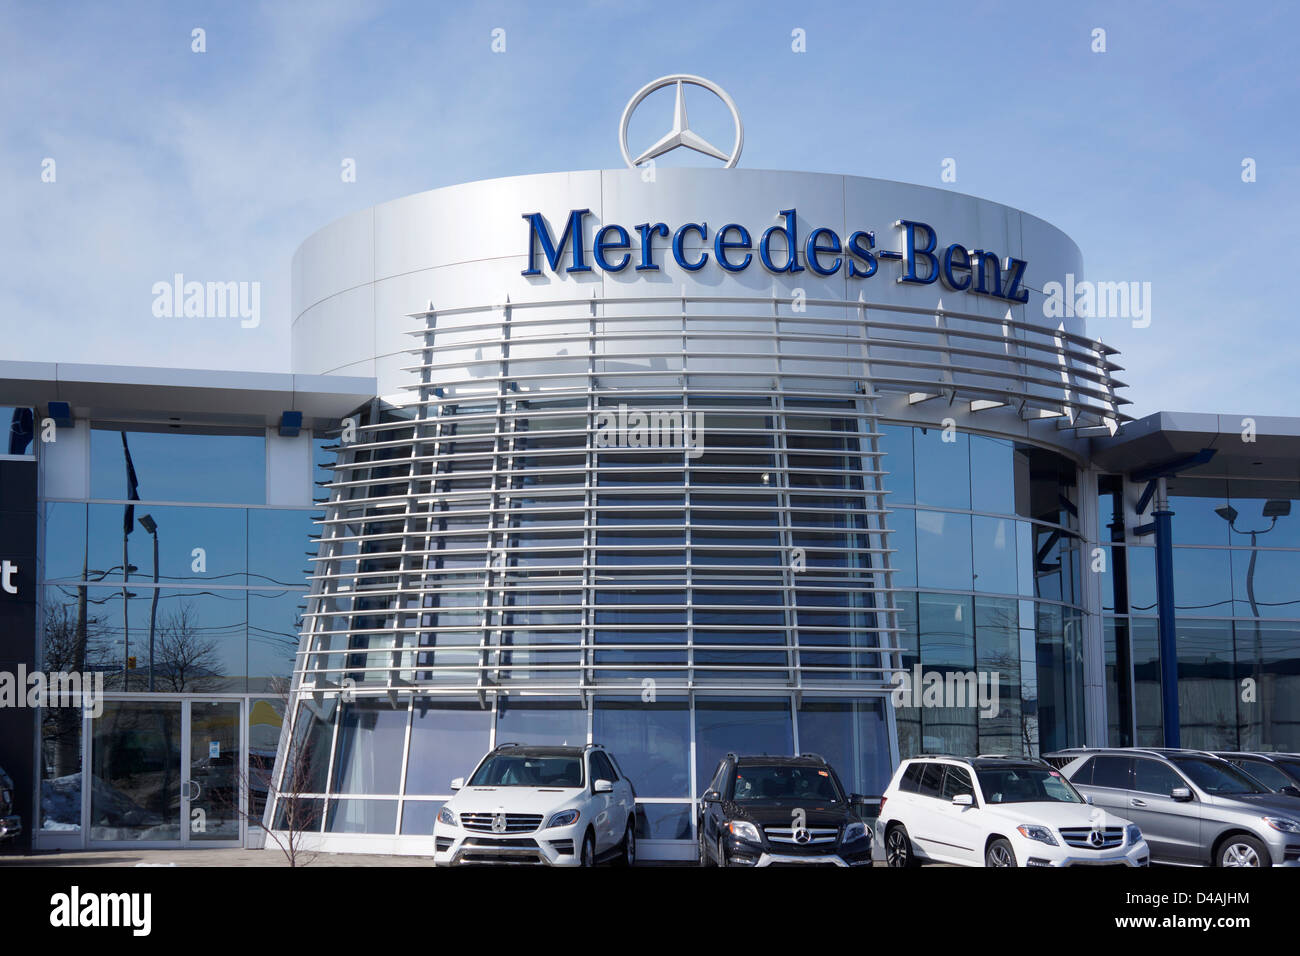 Mercedes benz dealership ontario canada stock photo for Mercedes benz of ontario ontario ca